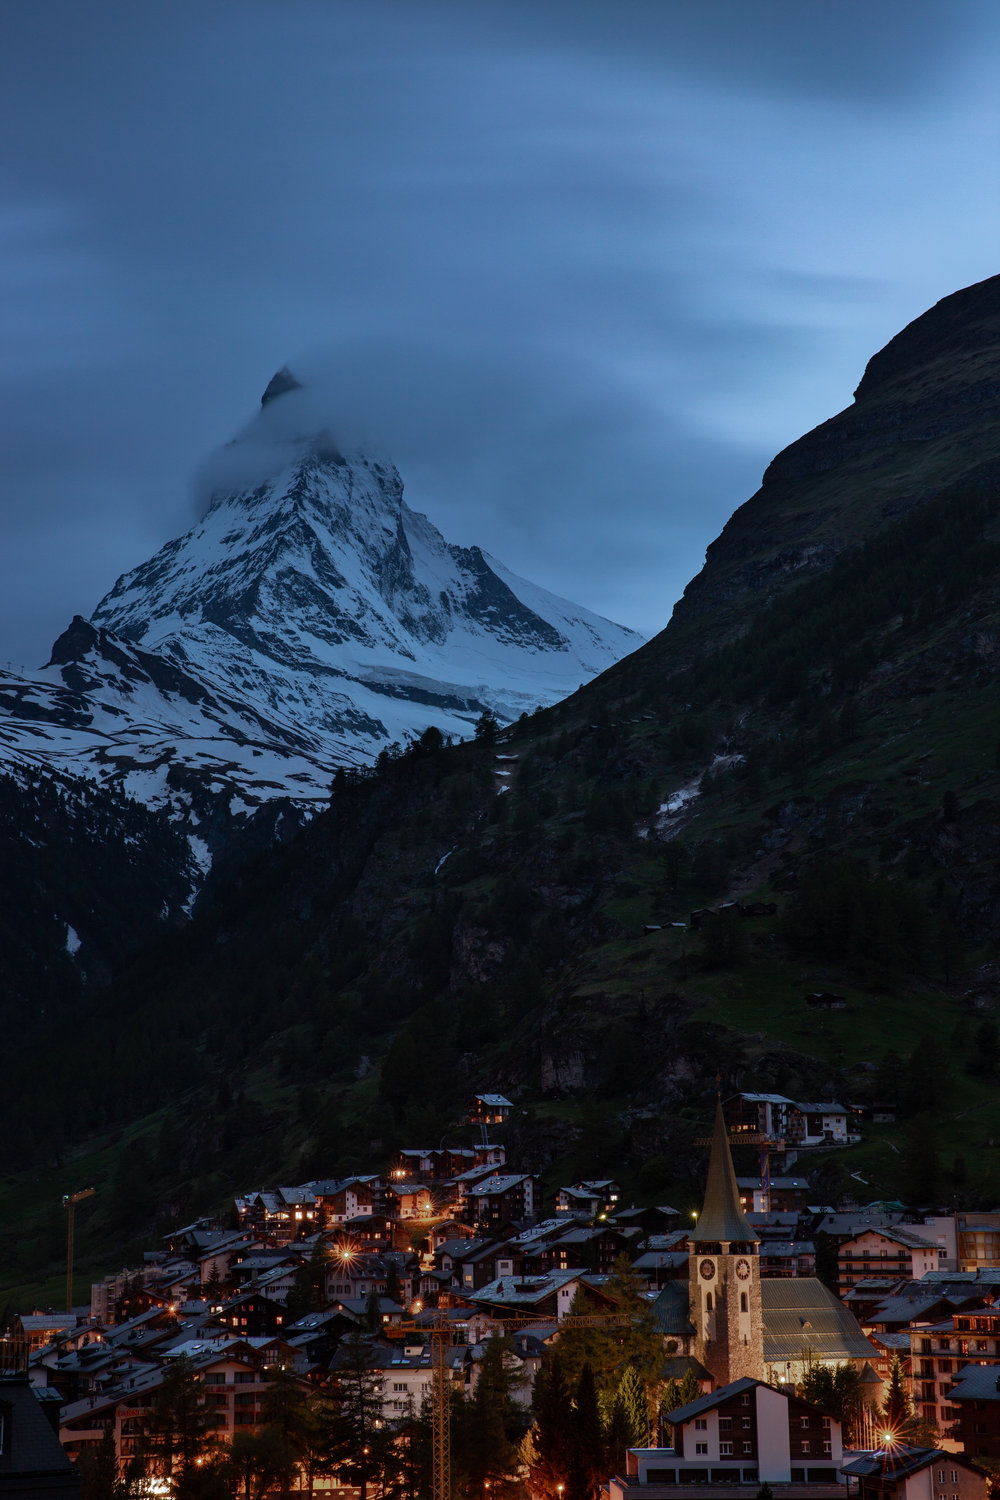 Night views over Zermatt and the Matterhorn